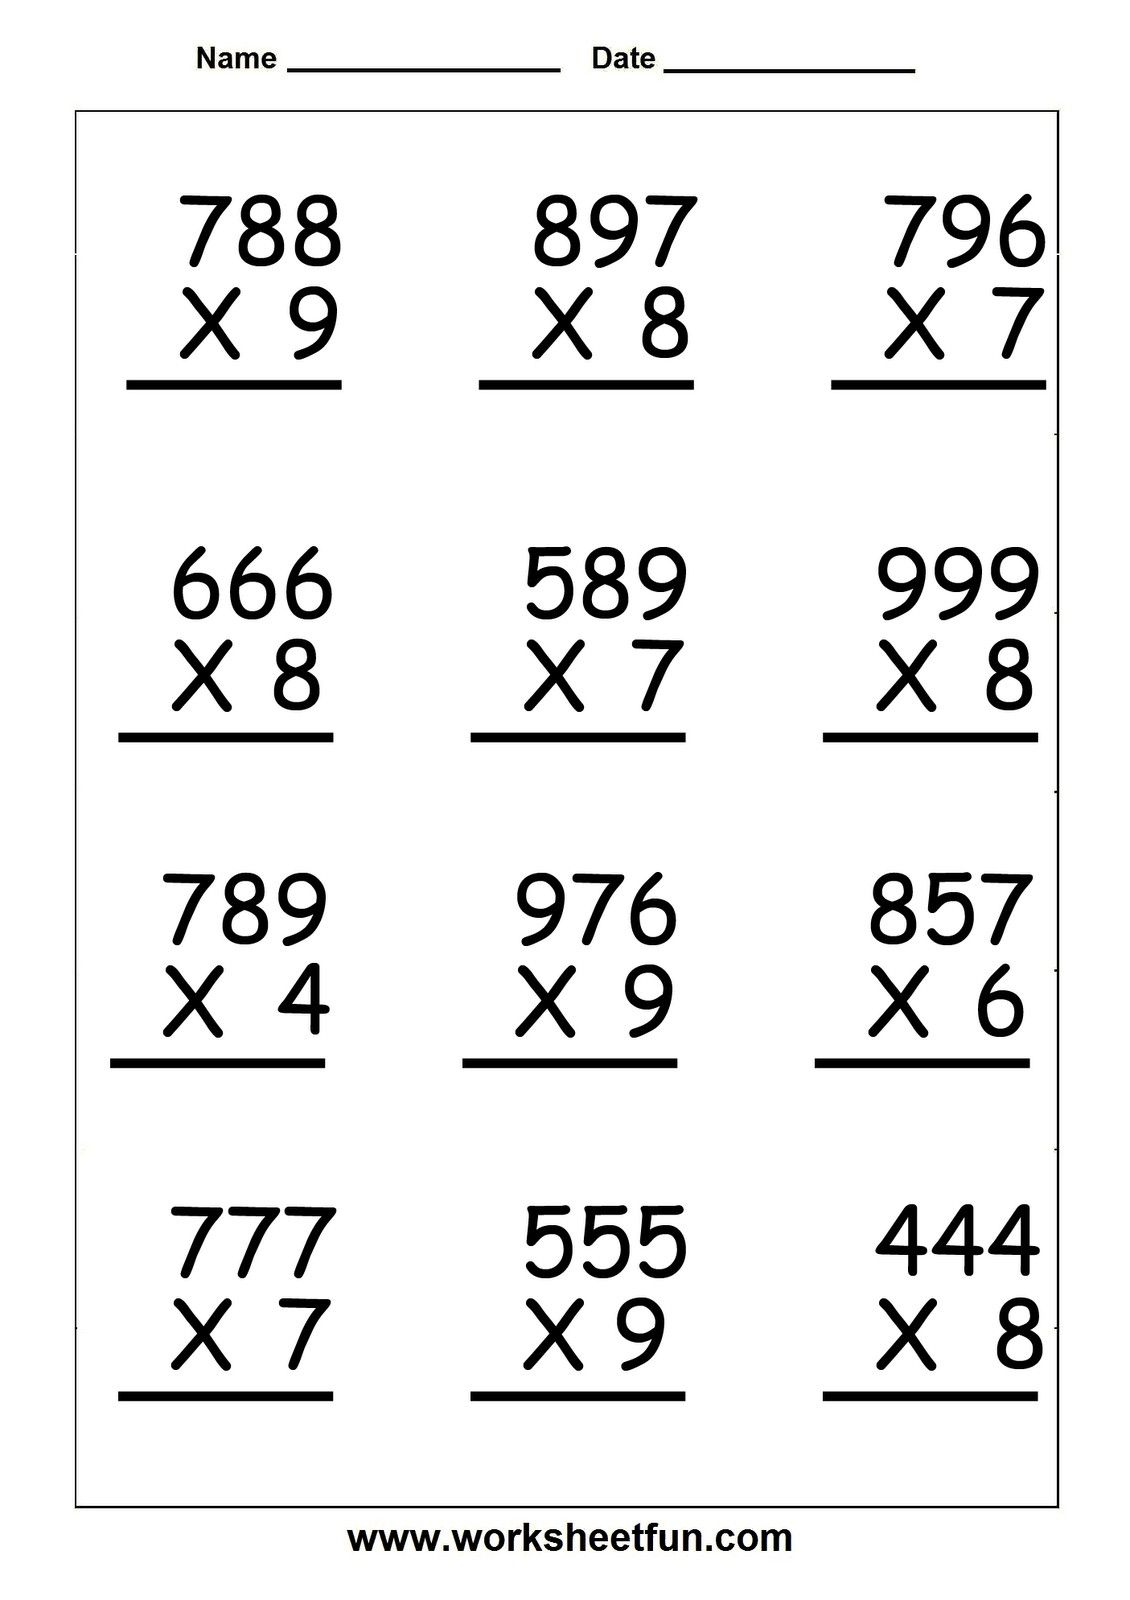 grade 5 multiplication worksheets Brandonbriceus – Grade 5 Maths Worksheet